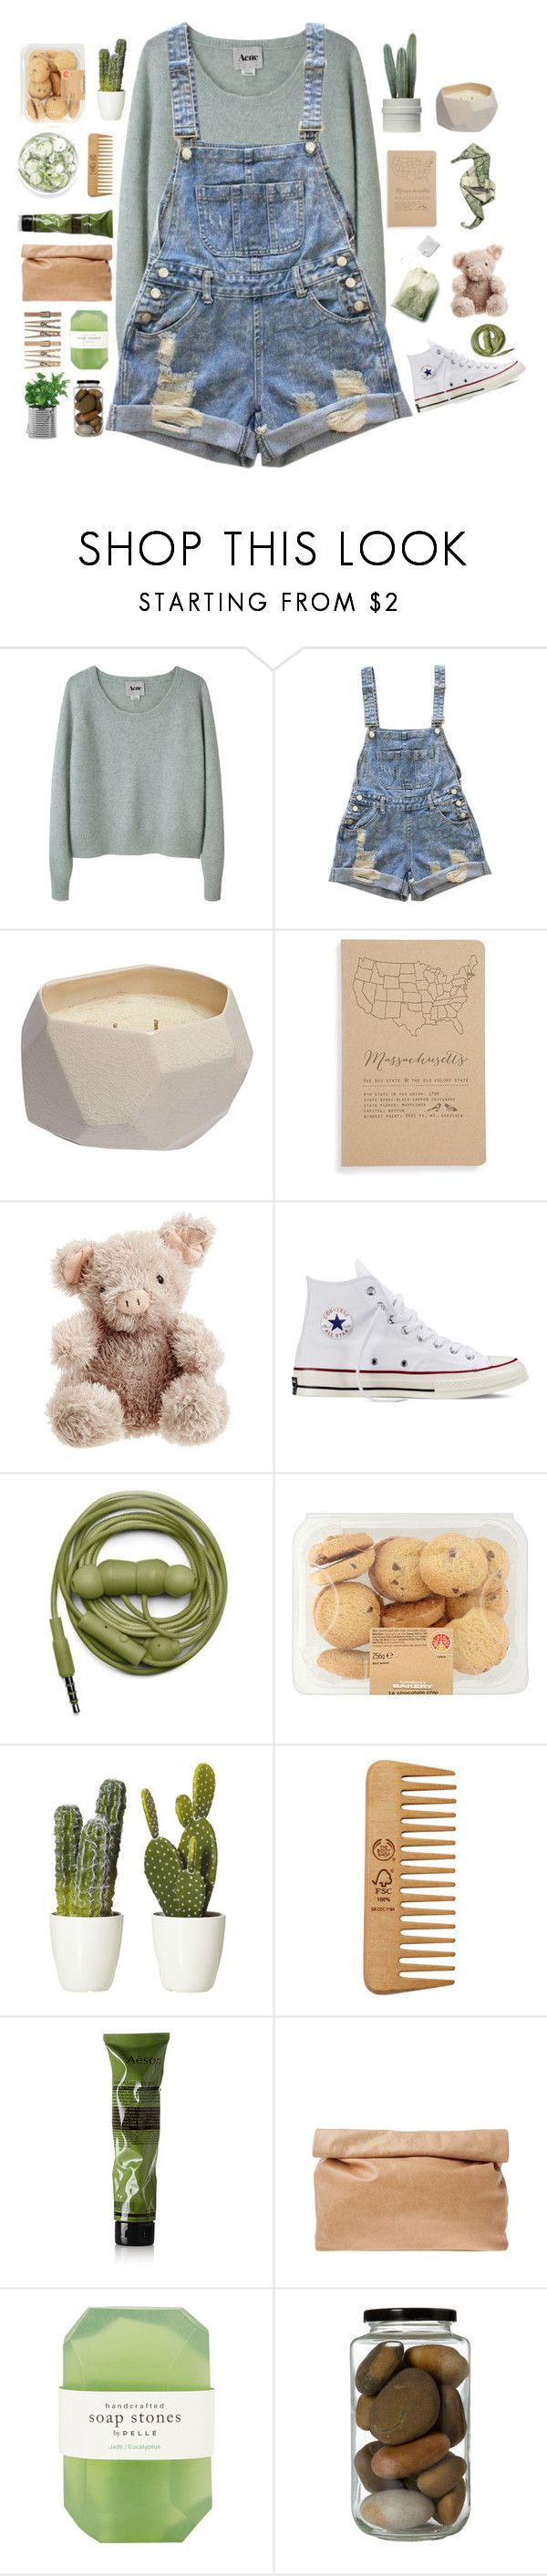 """""""🌵"""" by abbeyso on Polyvore featuring Acne Studios, Rebecca Taylor, Blackbird Letterpress, Jellycat, Converse, Urbanears, The Body Shop, Aesop, Marie Turnor and Pelle"""